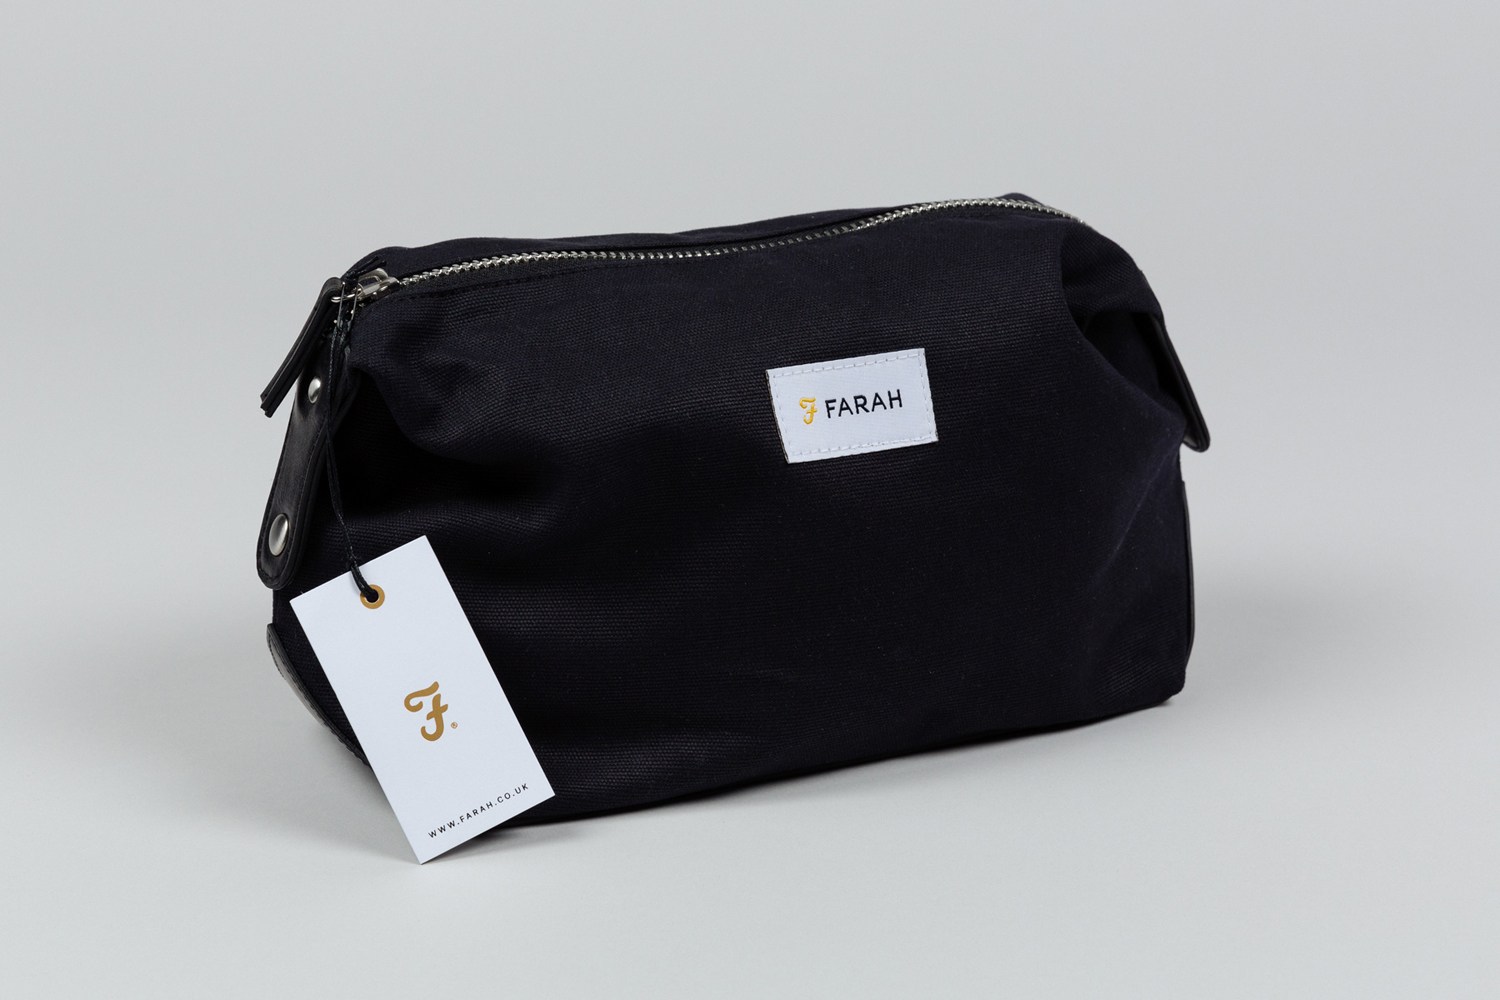 Brand identity, tag and label for UK based men's fashion brand Farah by graphic design studio Post